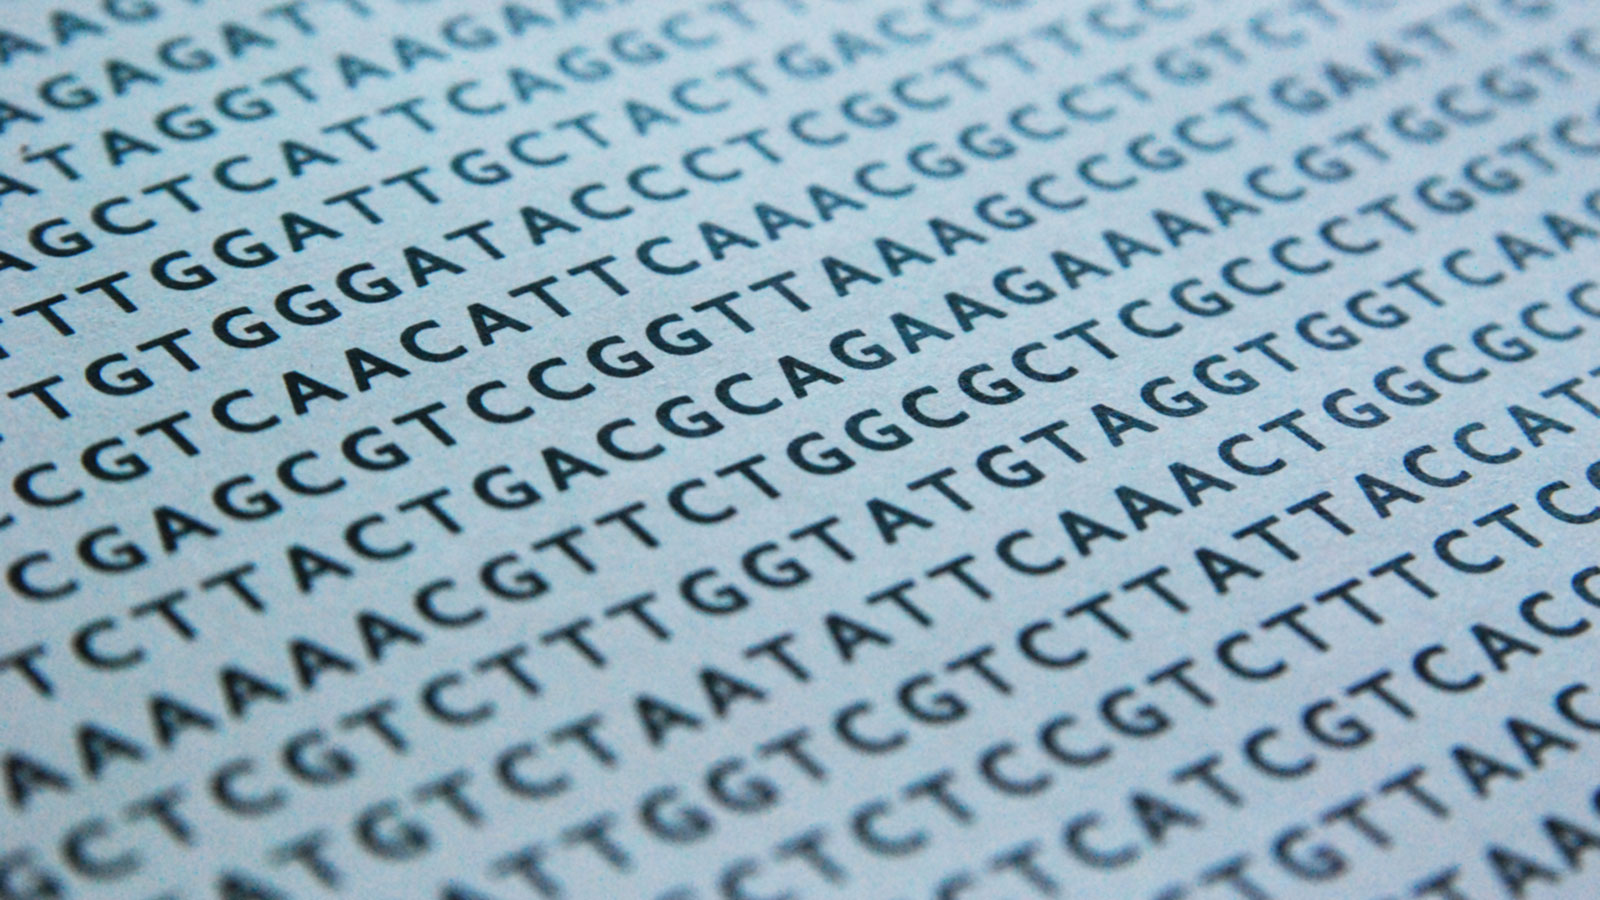 lines of DNA code in black text on a white page